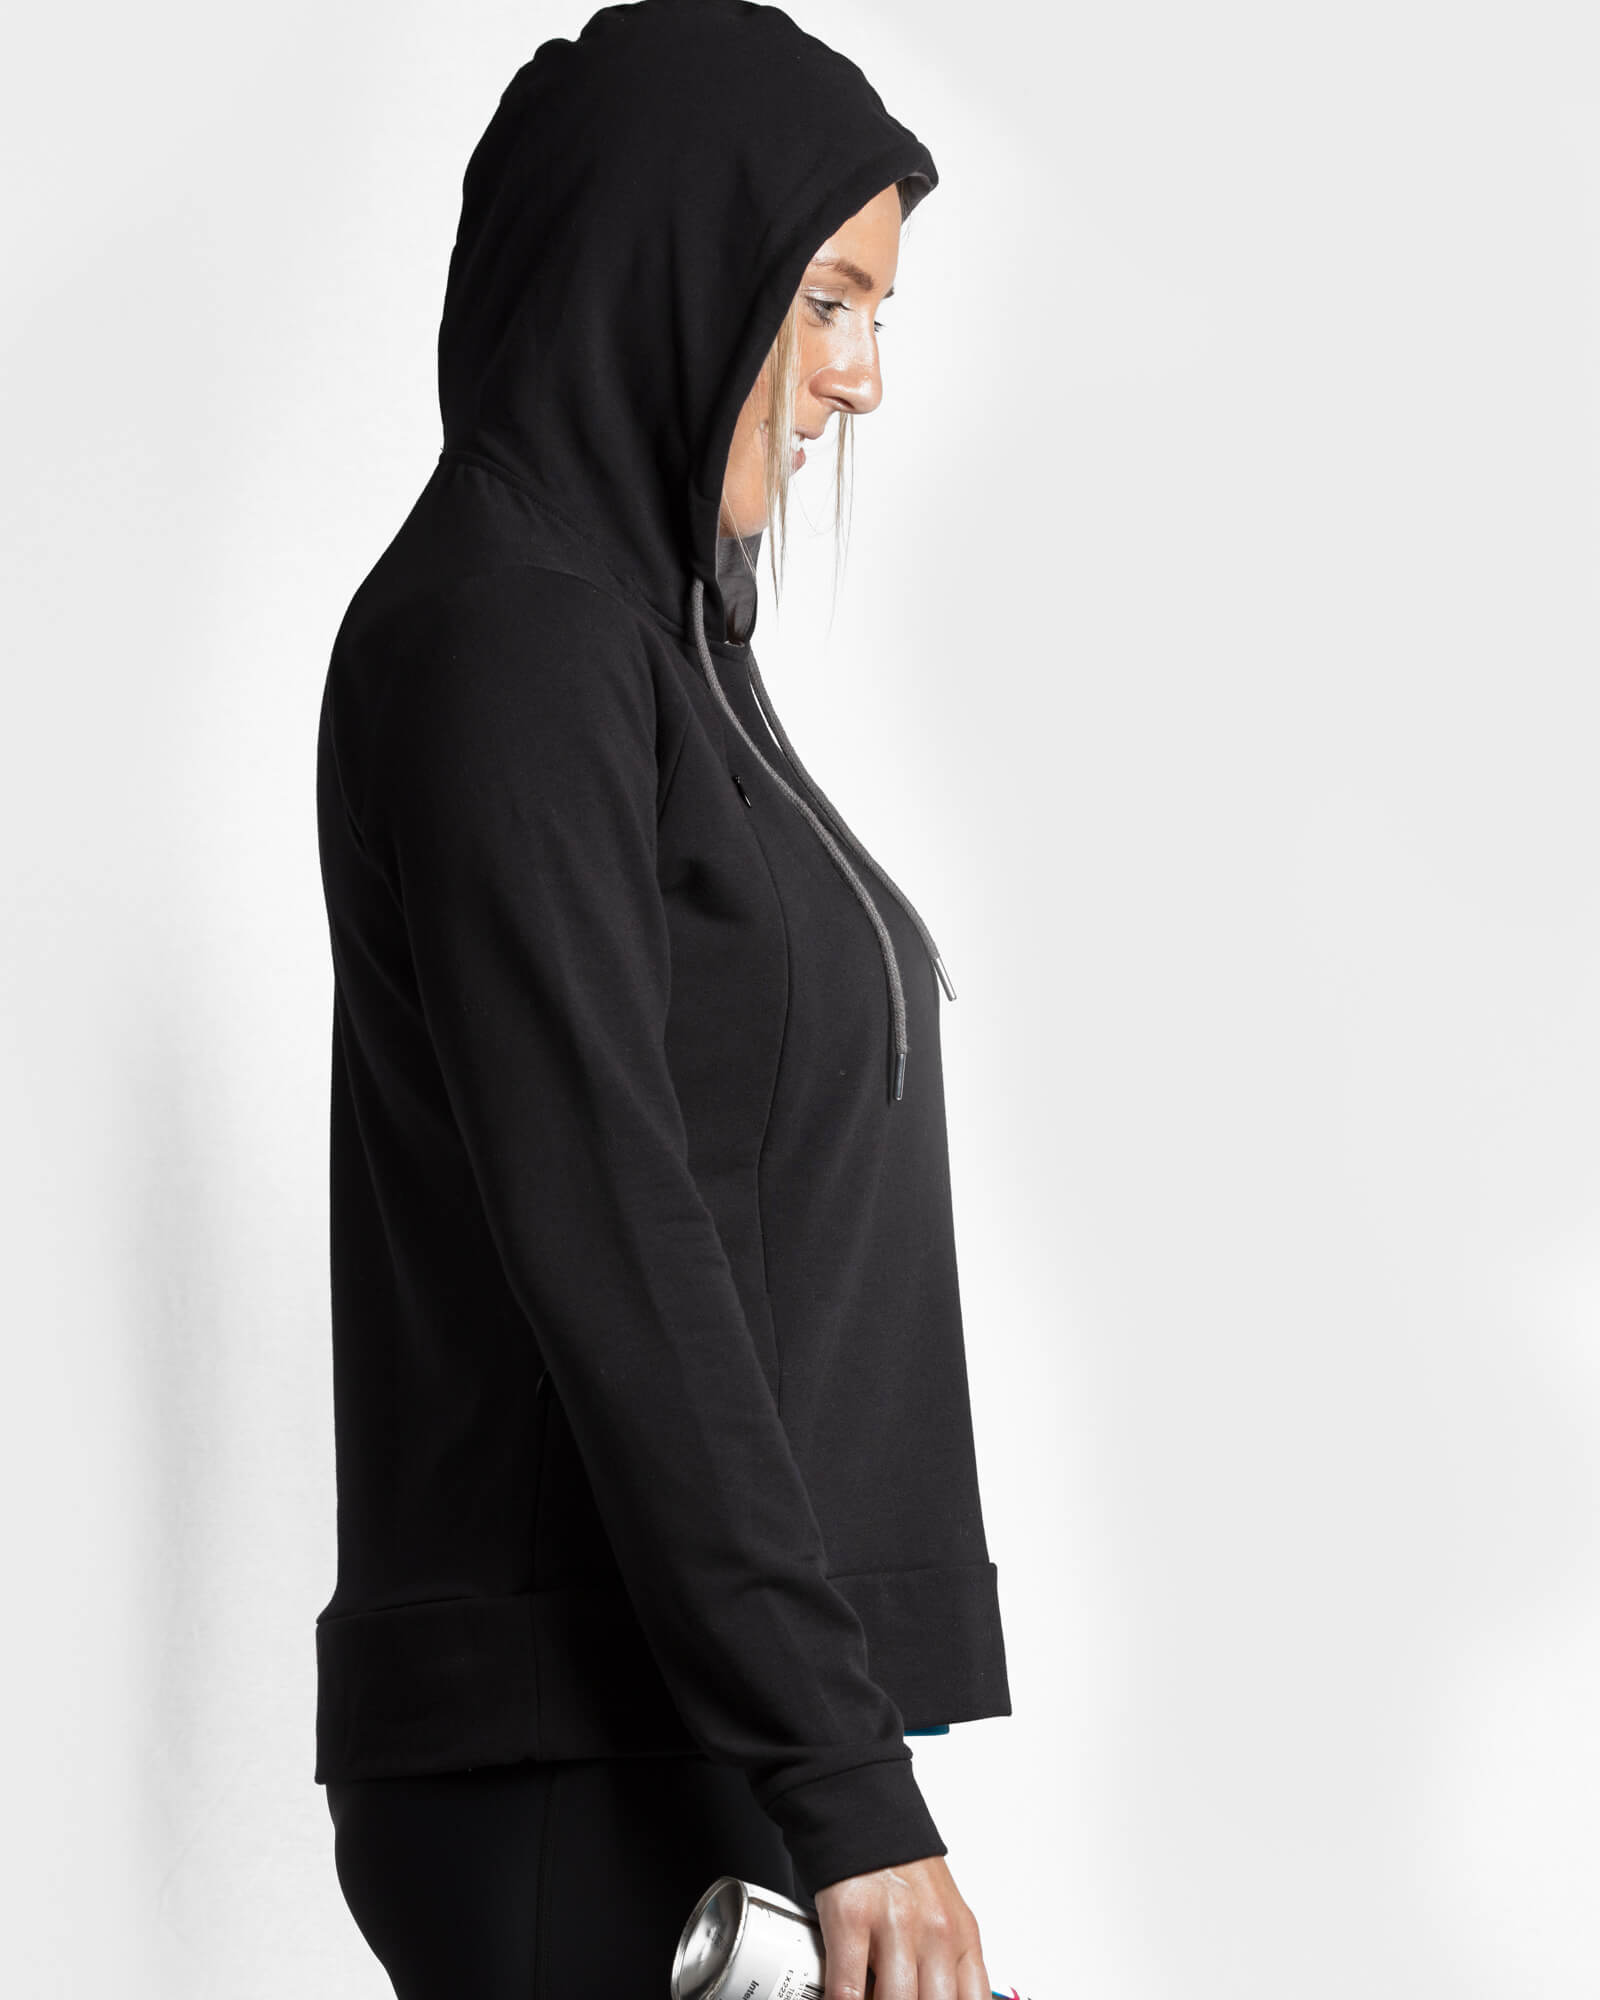 Signature Breastfeeding Hoodie Black - mammojo lactivewear